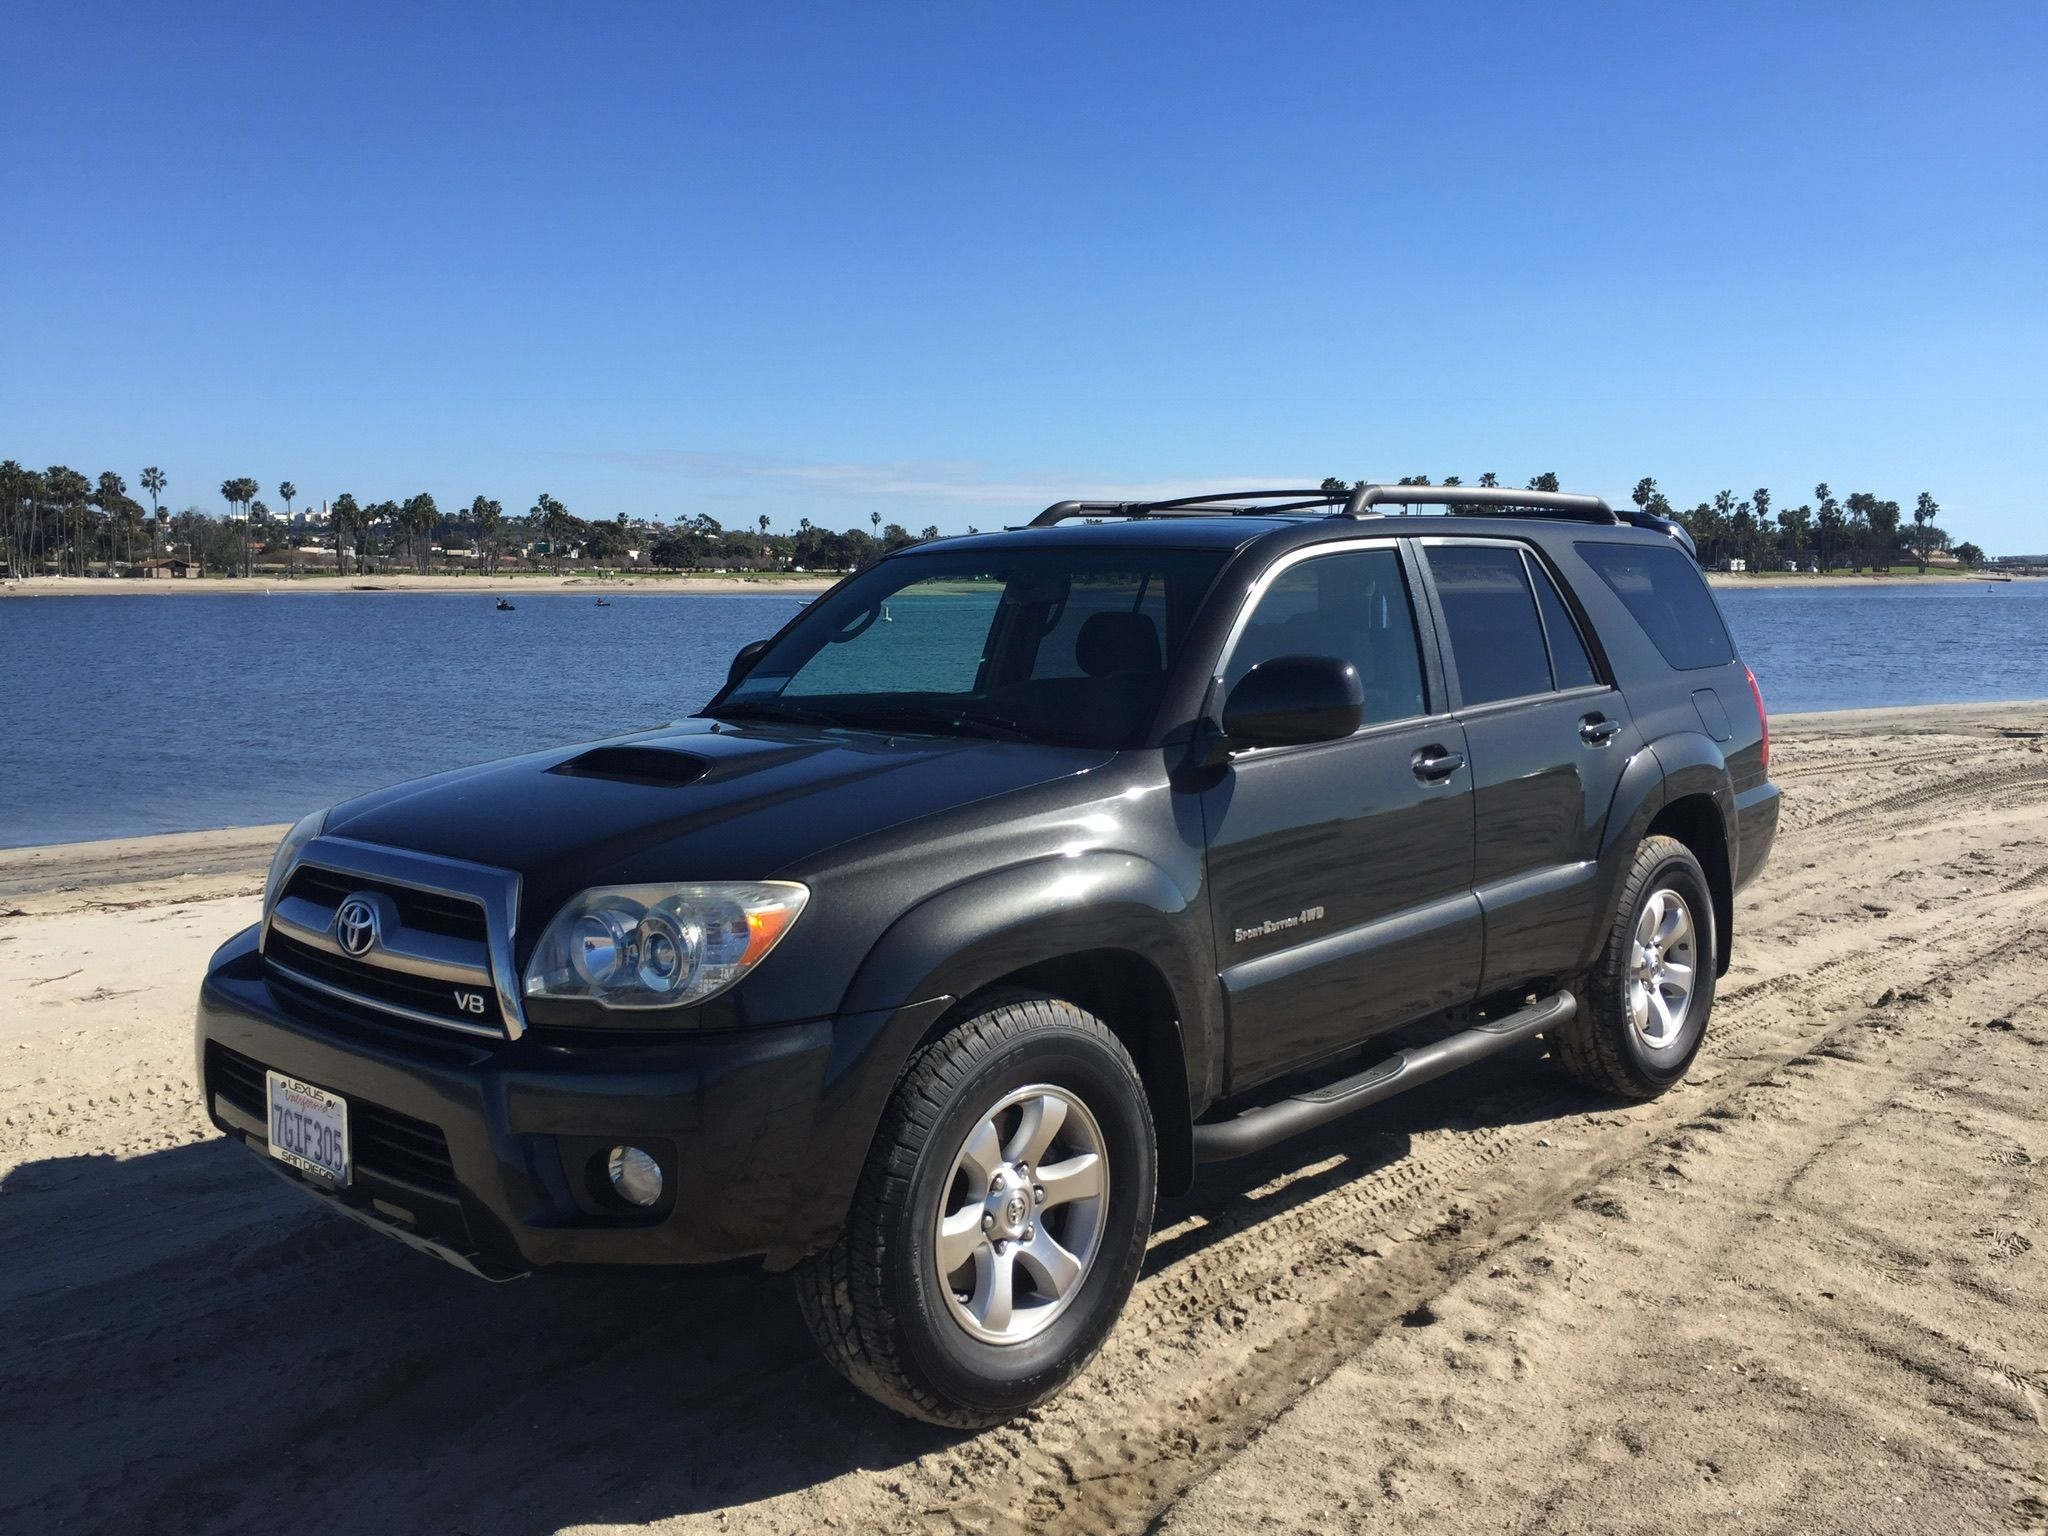 Just scored a shadow mica sport V8 4wd San Diego Toyota 4Runner